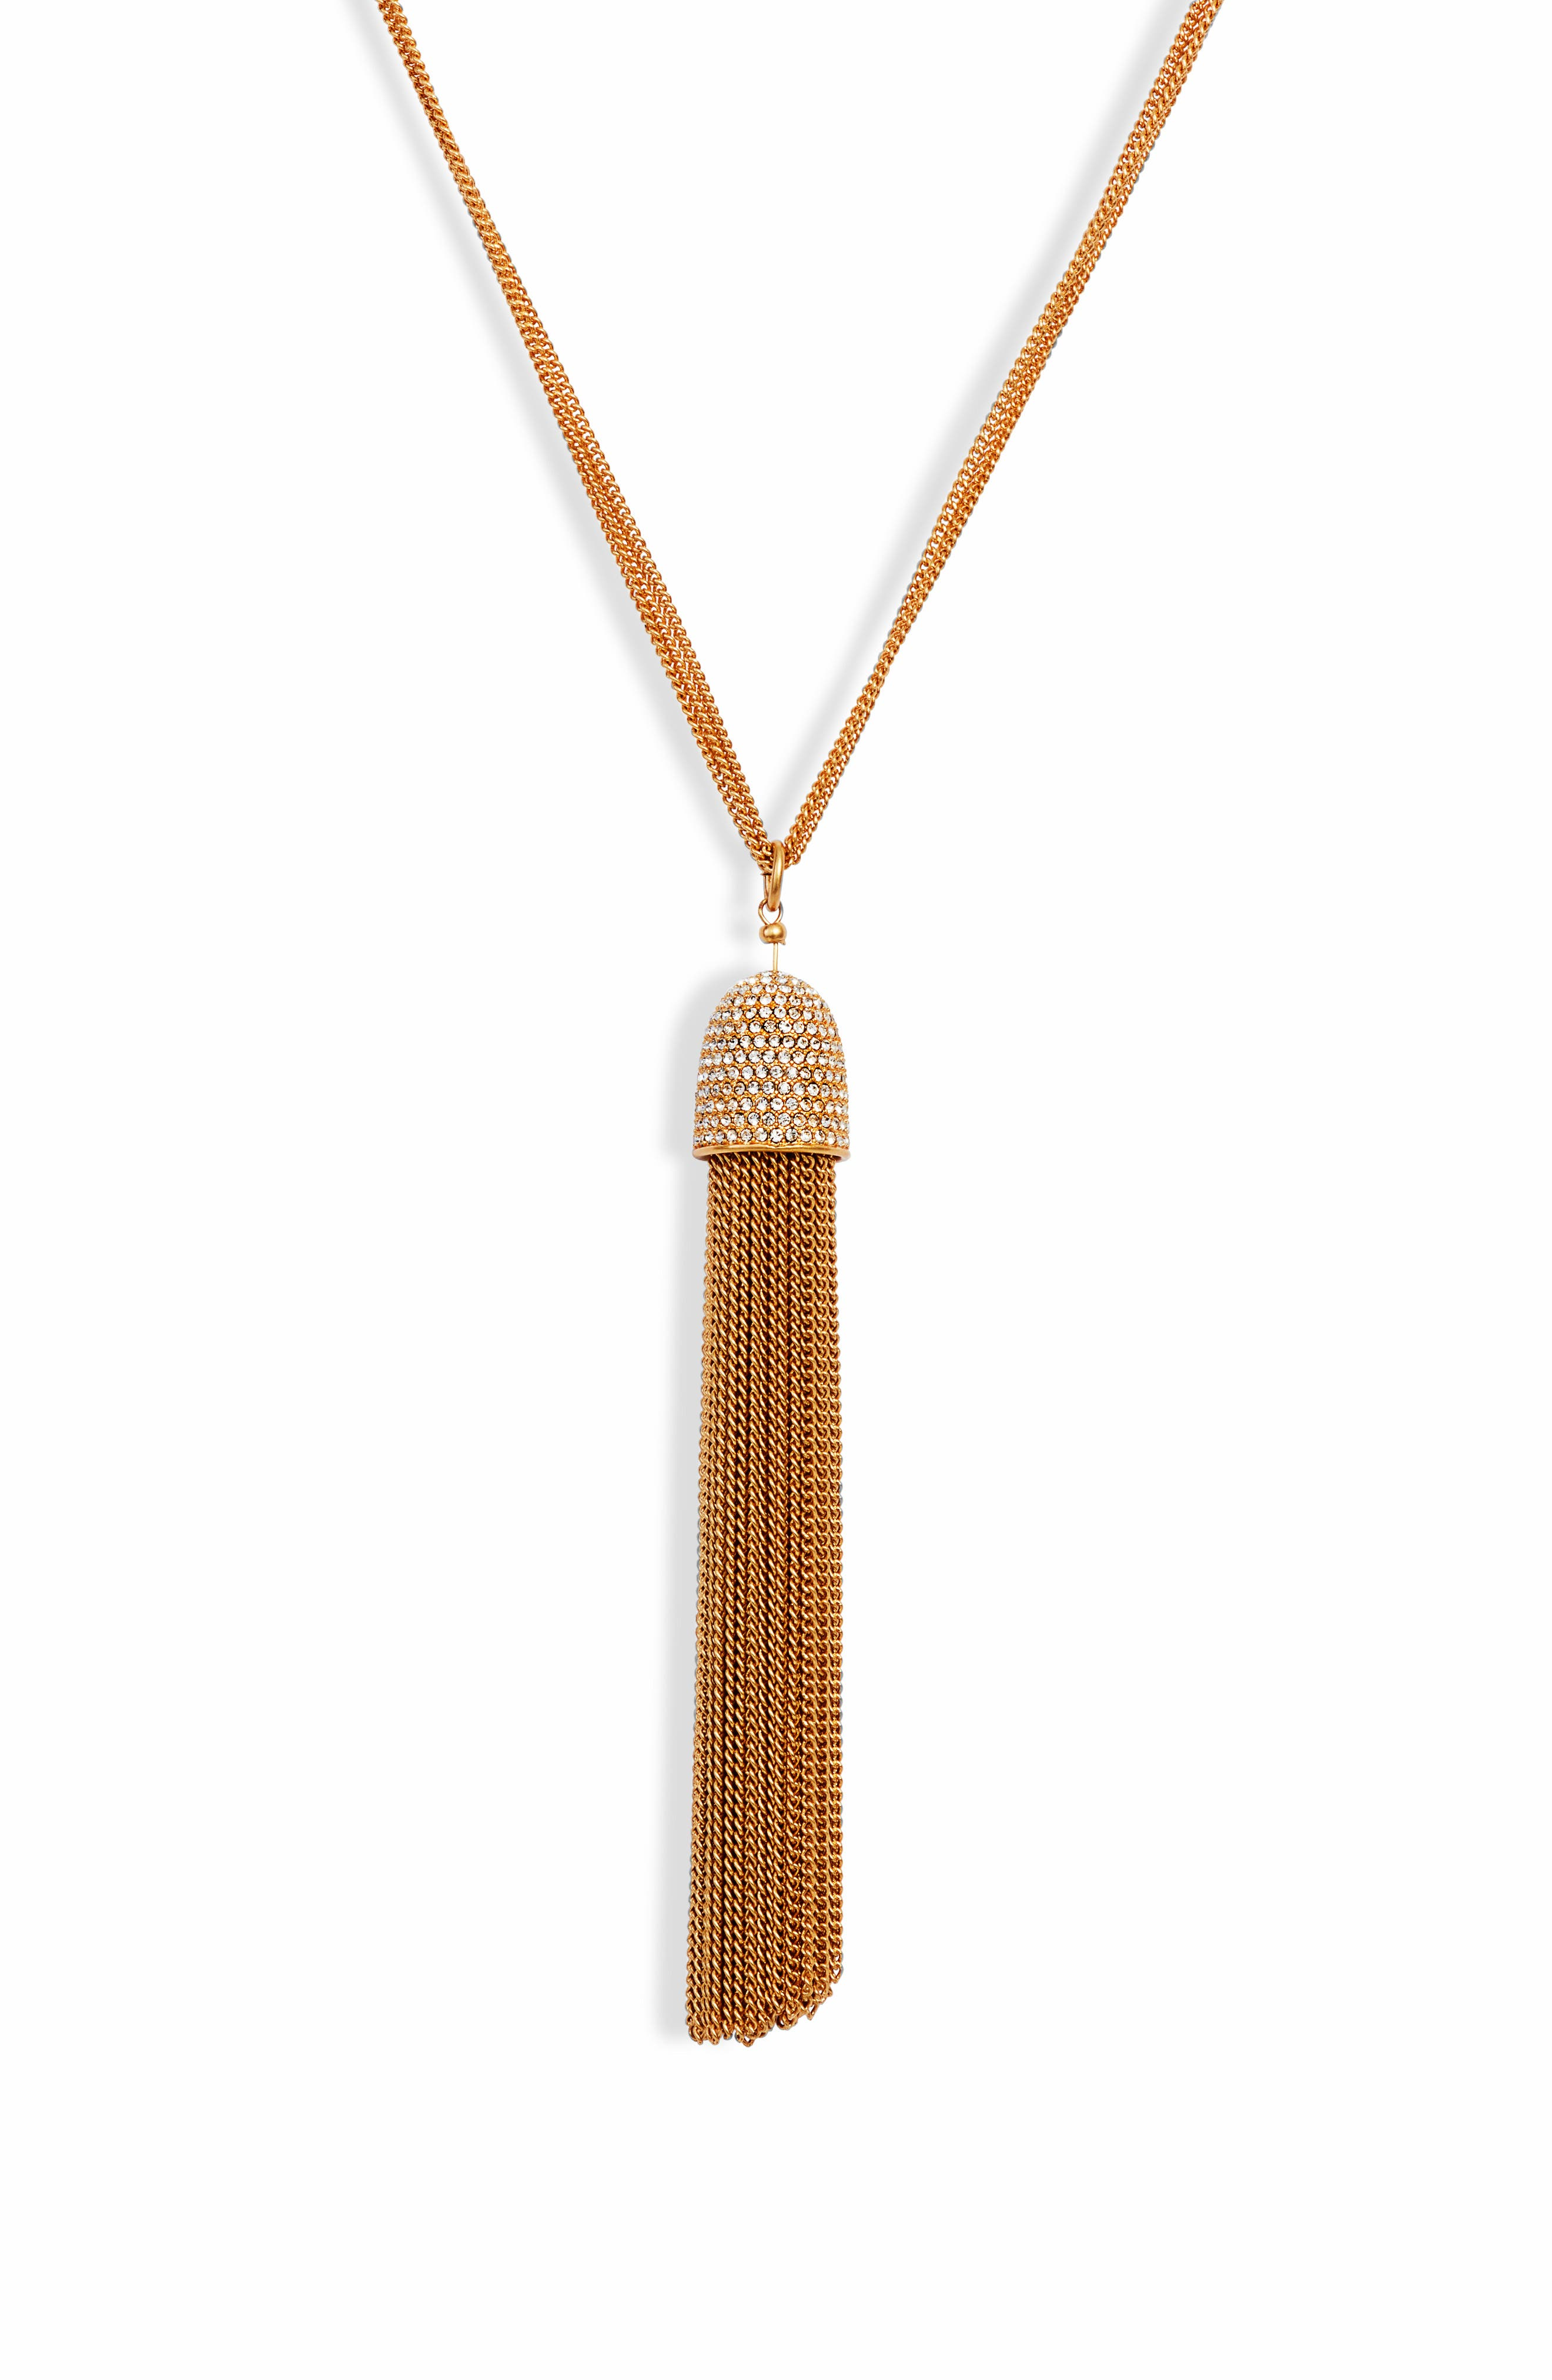 glimmer shimmer tassel pendant necklace,                             Alternate thumbnail 2, color,                             CLEAR/ GOLD